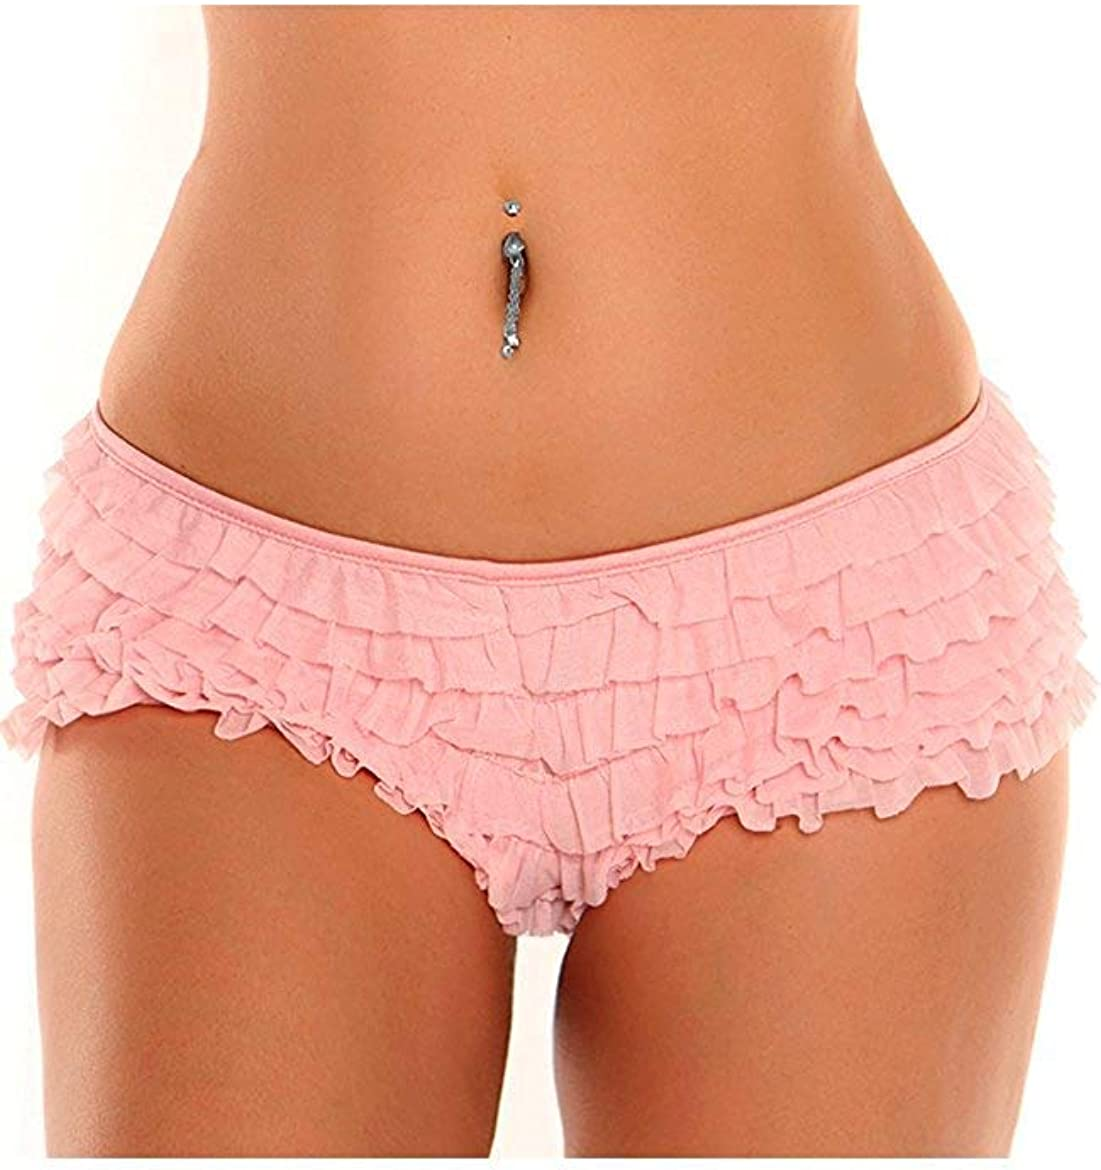 Daisy Corsets Women's Size Mesh Ruffle Shorts with Bow Plus